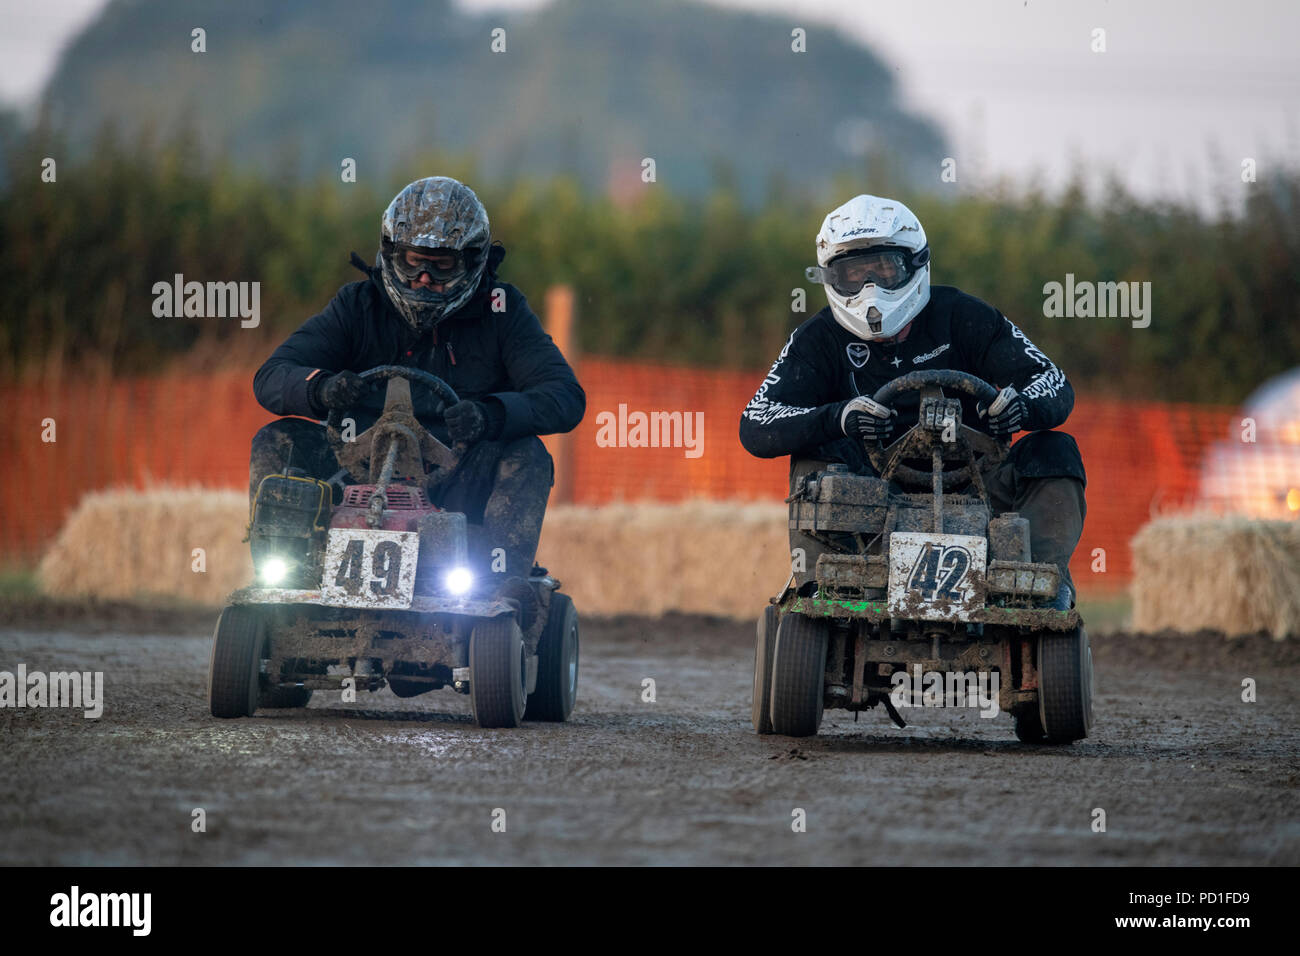 The 12 hour endurance lawnmower race, organised by the British Lawn Mower Racing Association, started at 8pm on Saturday and teams from around the world raced through the night to the finish line at 8am Sunday morning. 5th August 2018. Billingshurst, West Sussex. The 12 hour enduarance lawnmower race, organised by the British Lawn Mower Racing Association, started at 8pm on Saturday and teams from around the world raced through the night to the finish line at 8am Sunday morning. (left and right) Team Mower With Attitude and Mow Fear. At 11 hours and 30 minutes, Northerners Kick Grass wer - Stock Image